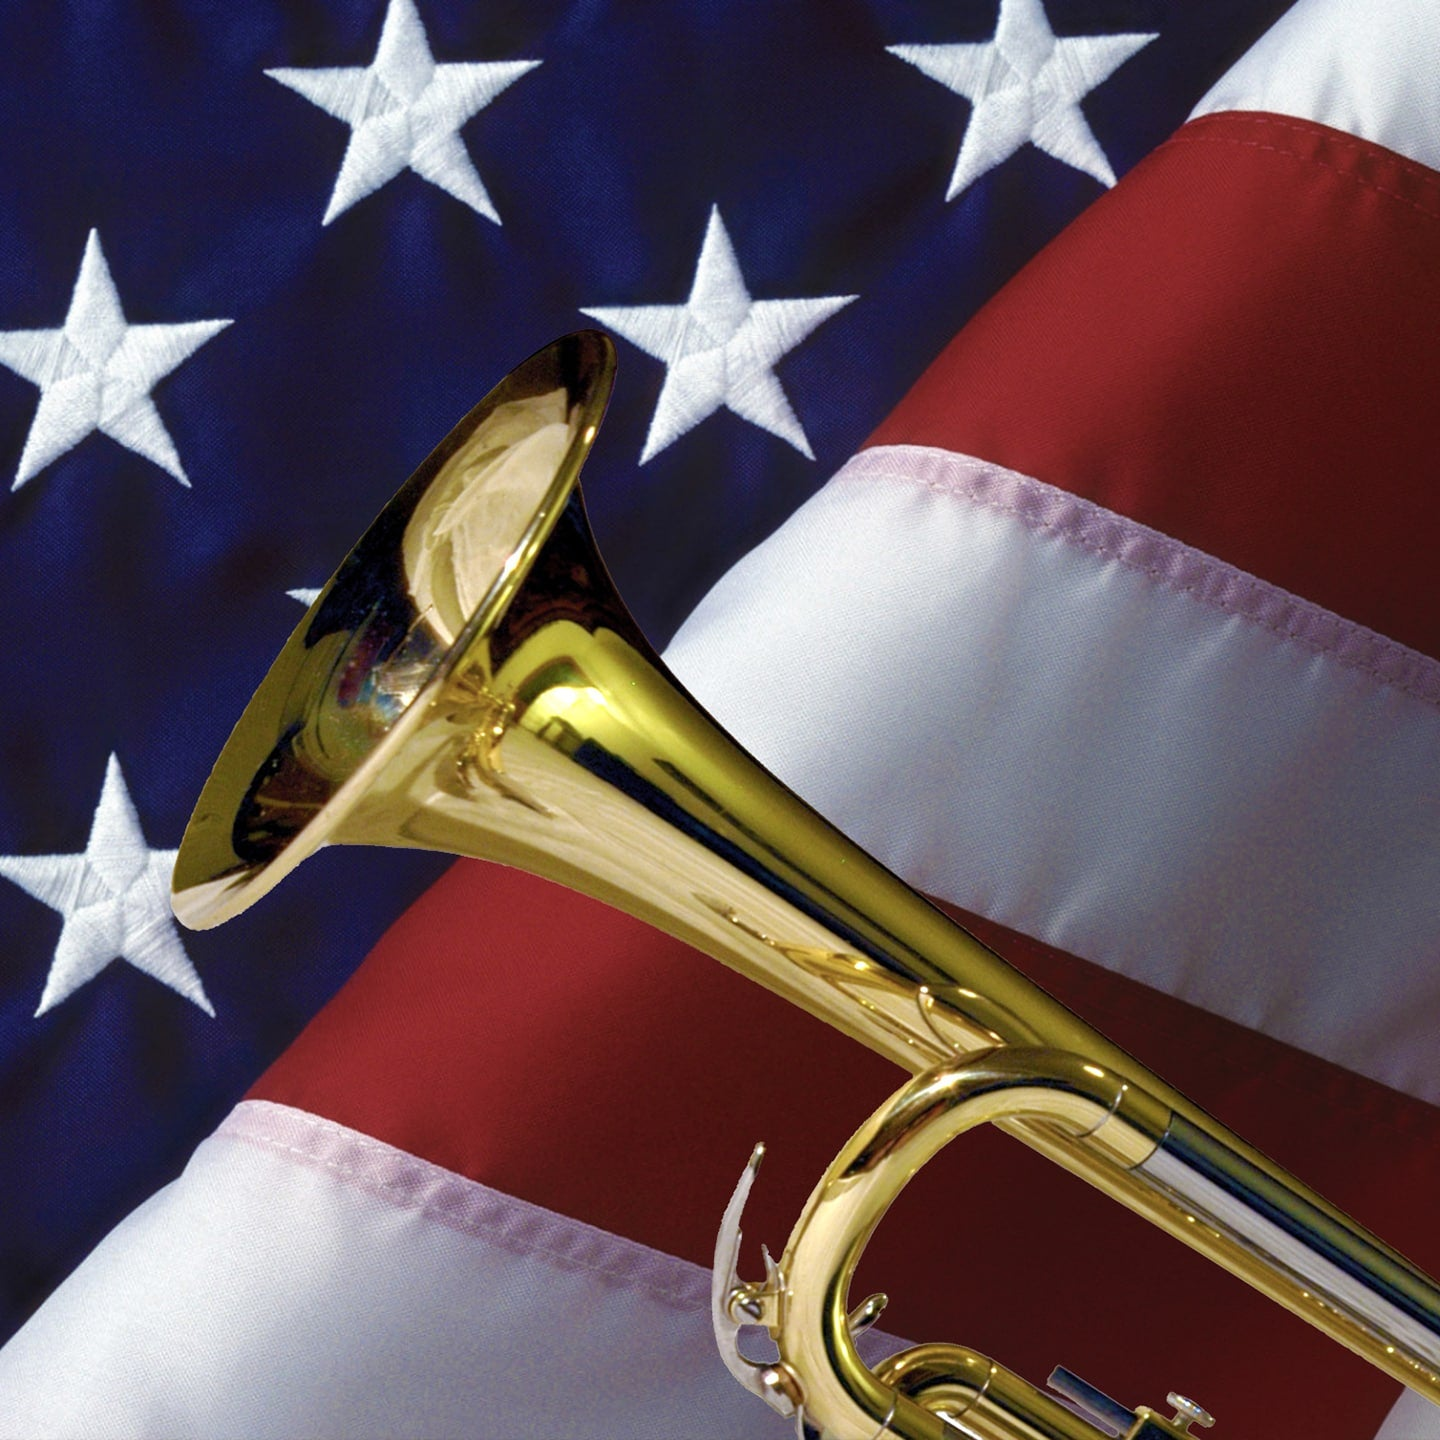 Charlotte Symphony: Stars, Stripes and Sousa